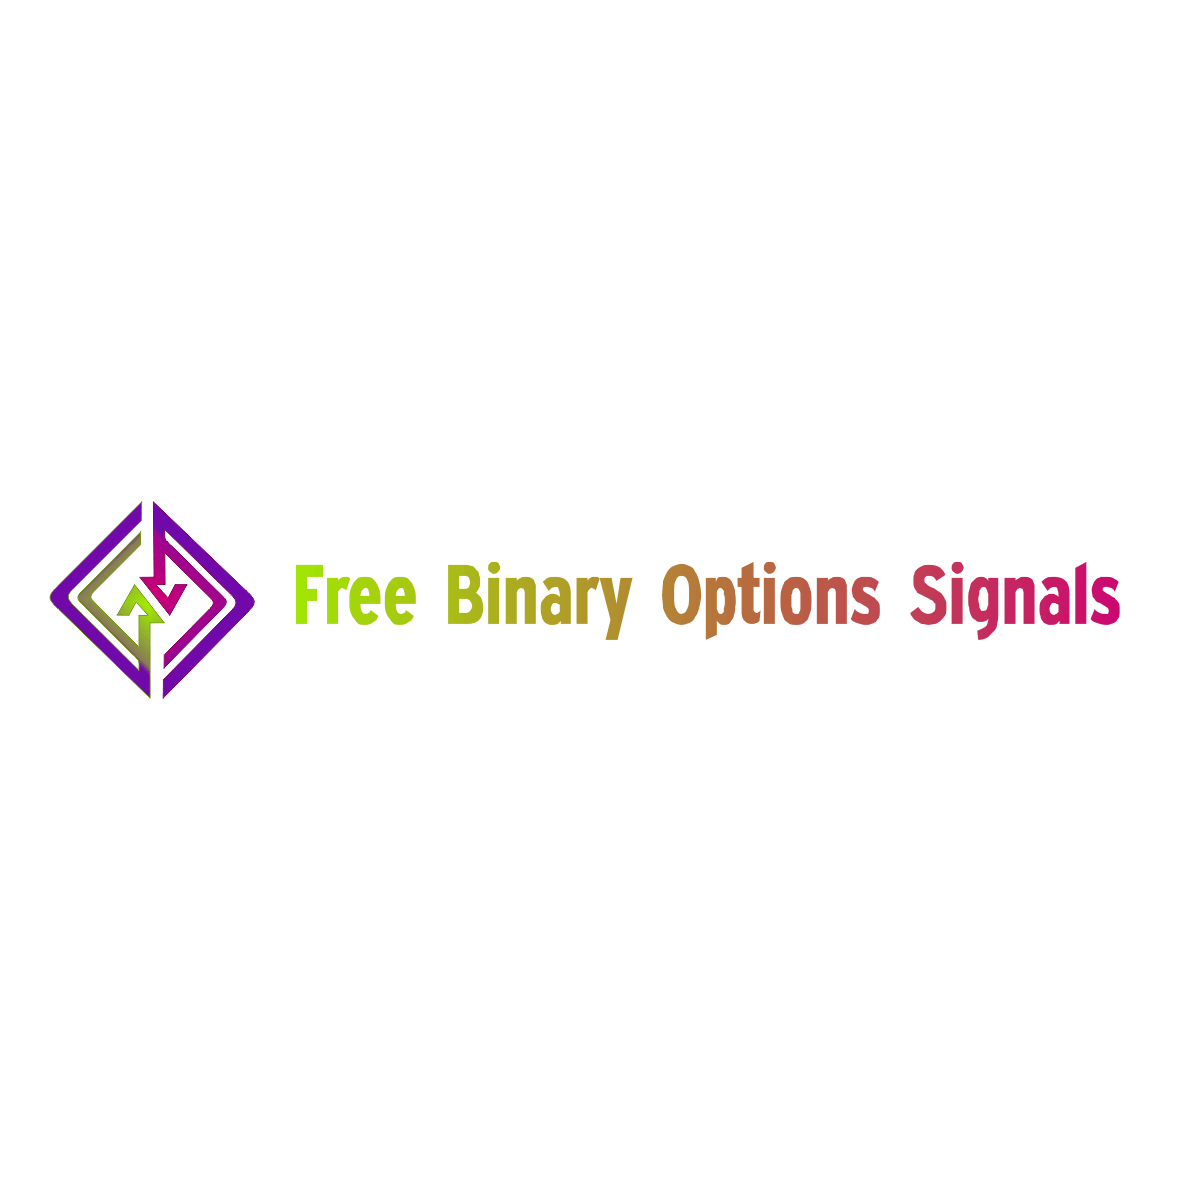 free-binary-options-signals-OG